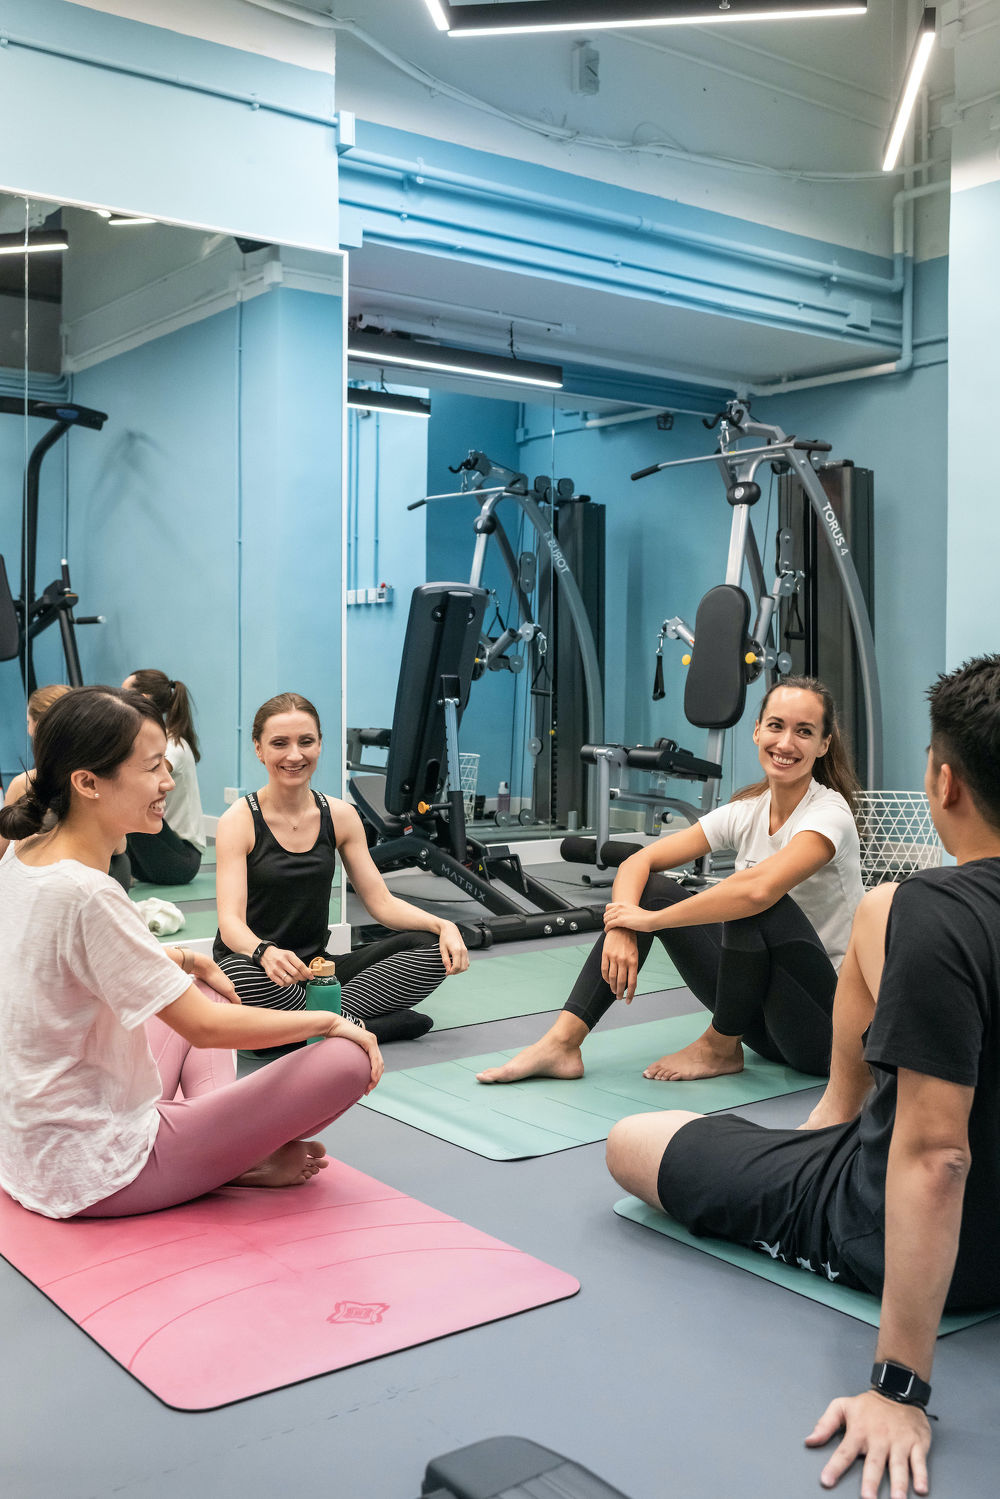 EDGEPROP SINGAPORE - The gym at Weave on Baker is one of the shared recreational amenities featured at the 95-unit co-living property in Hung Hom, Kowloon (Photo: Weave Co-Living